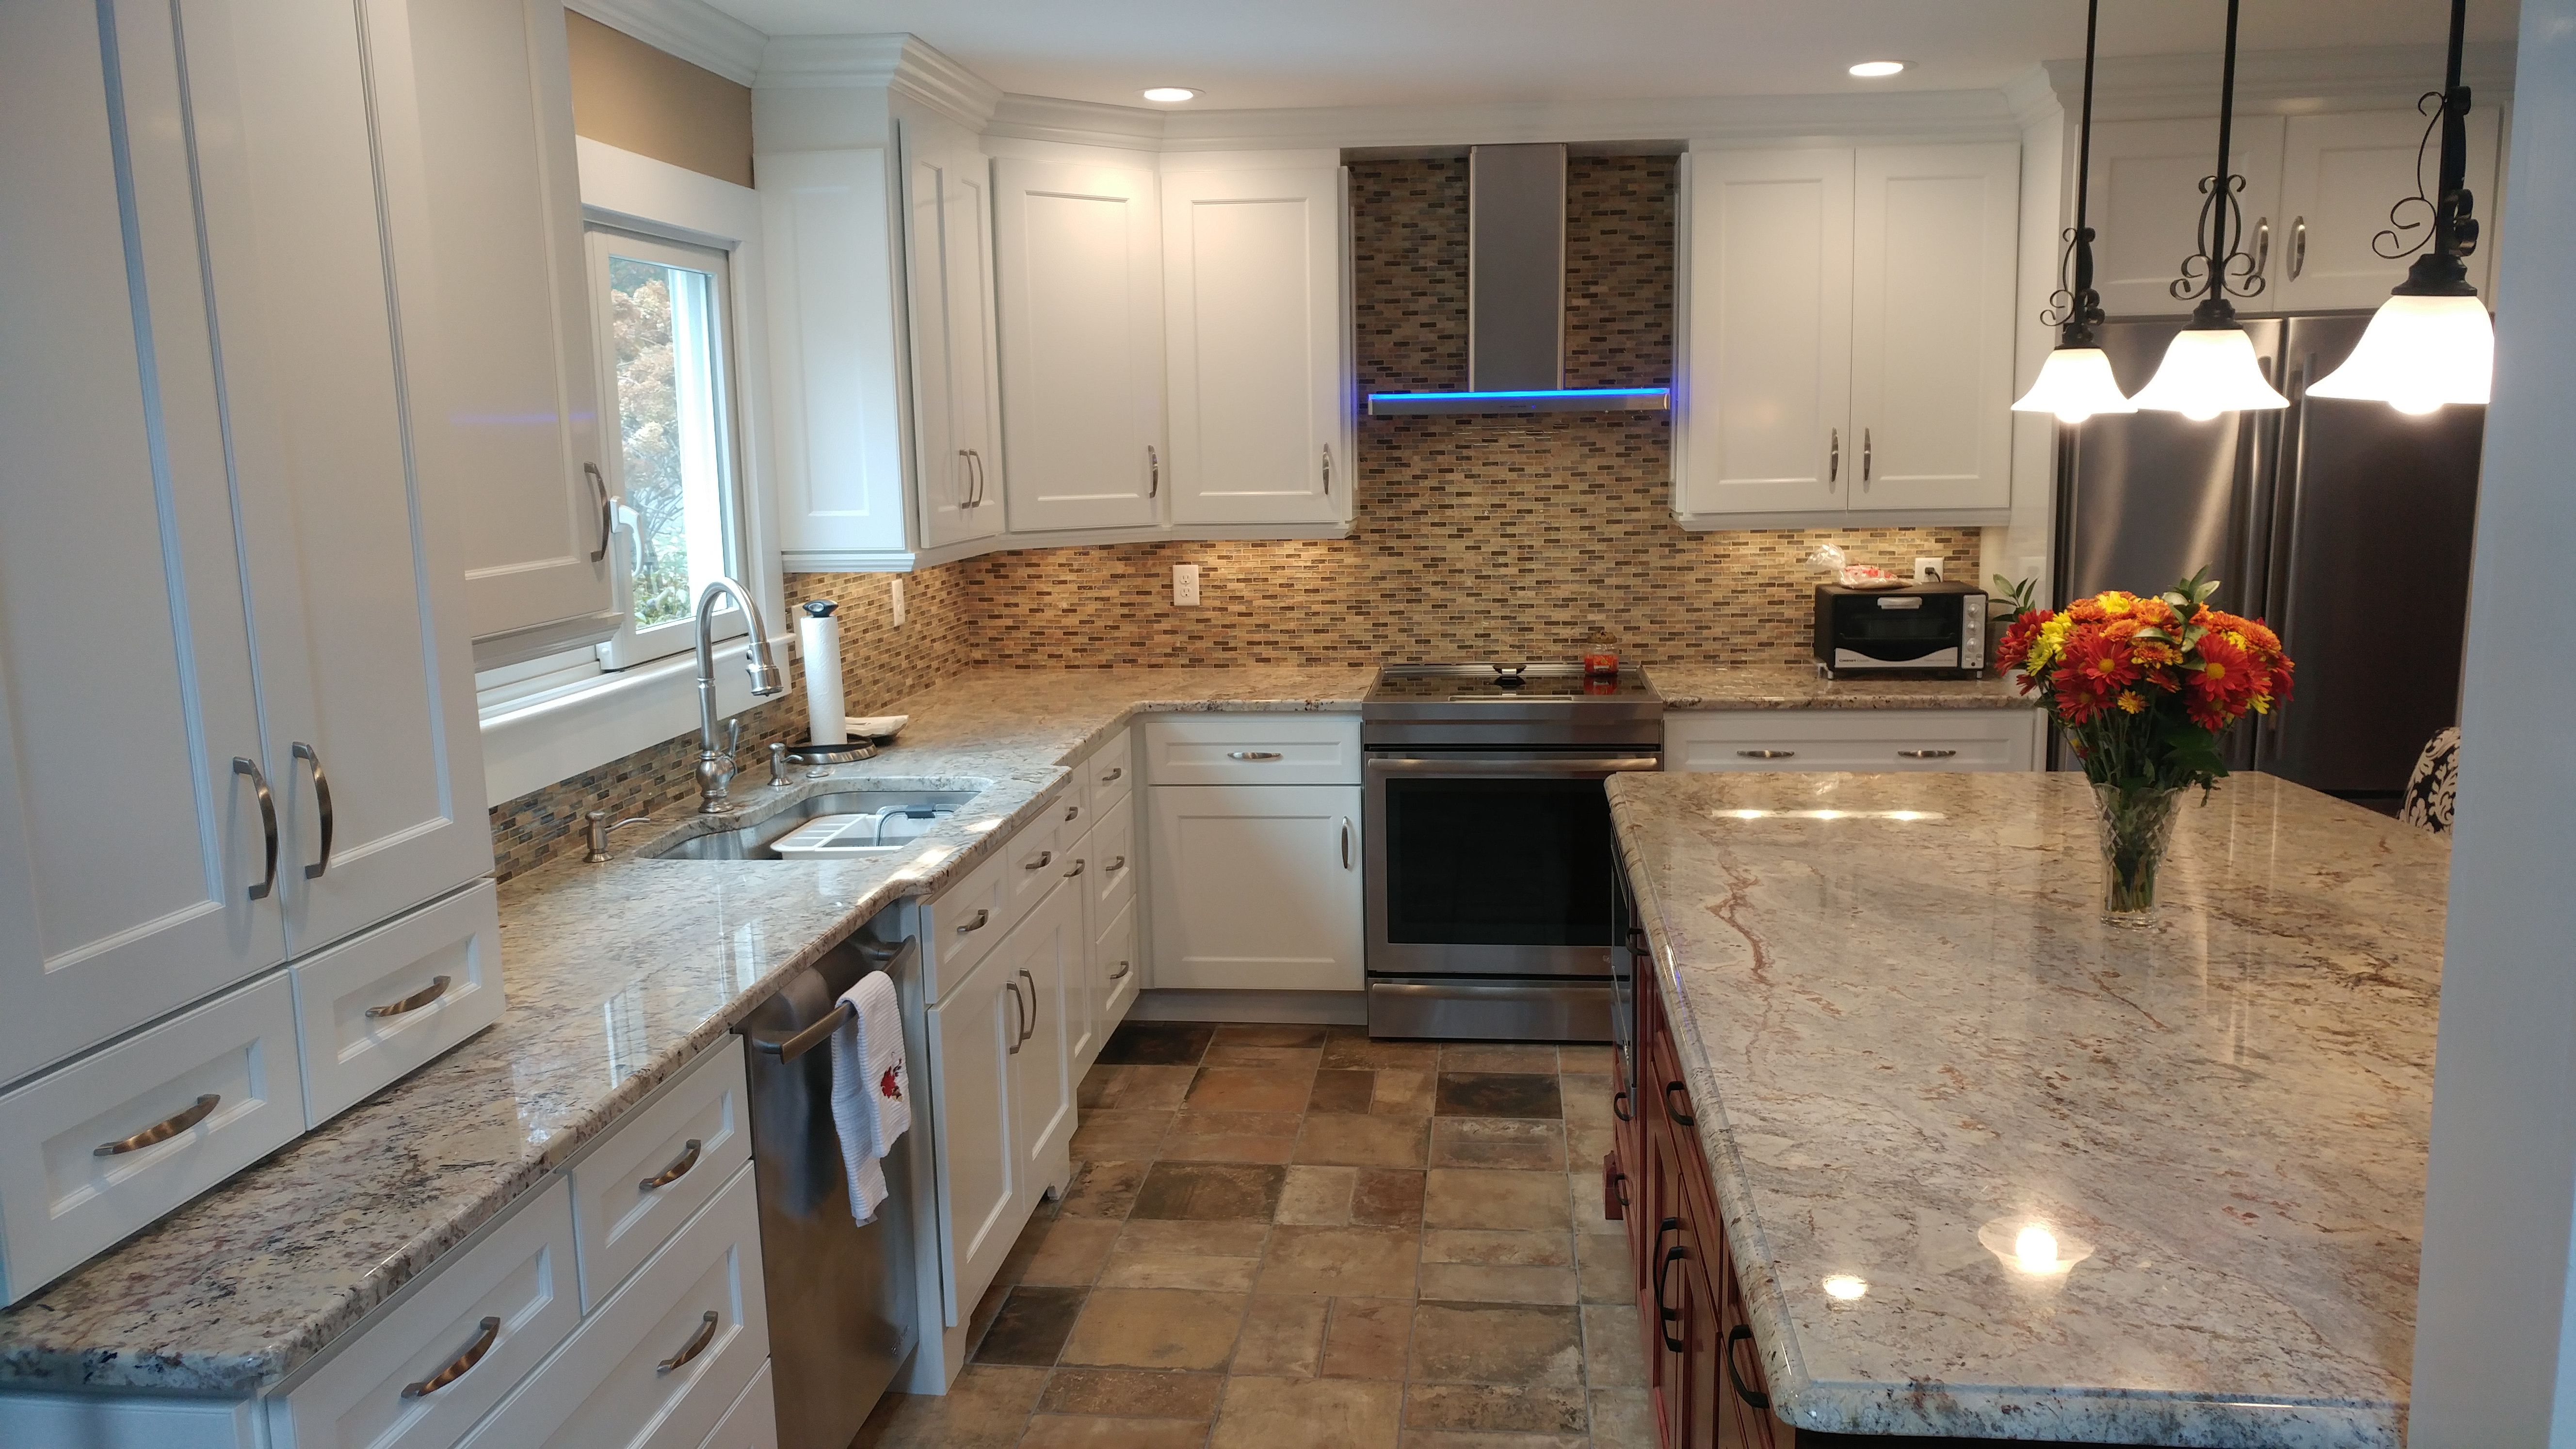 Traditional Photo Gallery - Kitchens By Design, Inc.